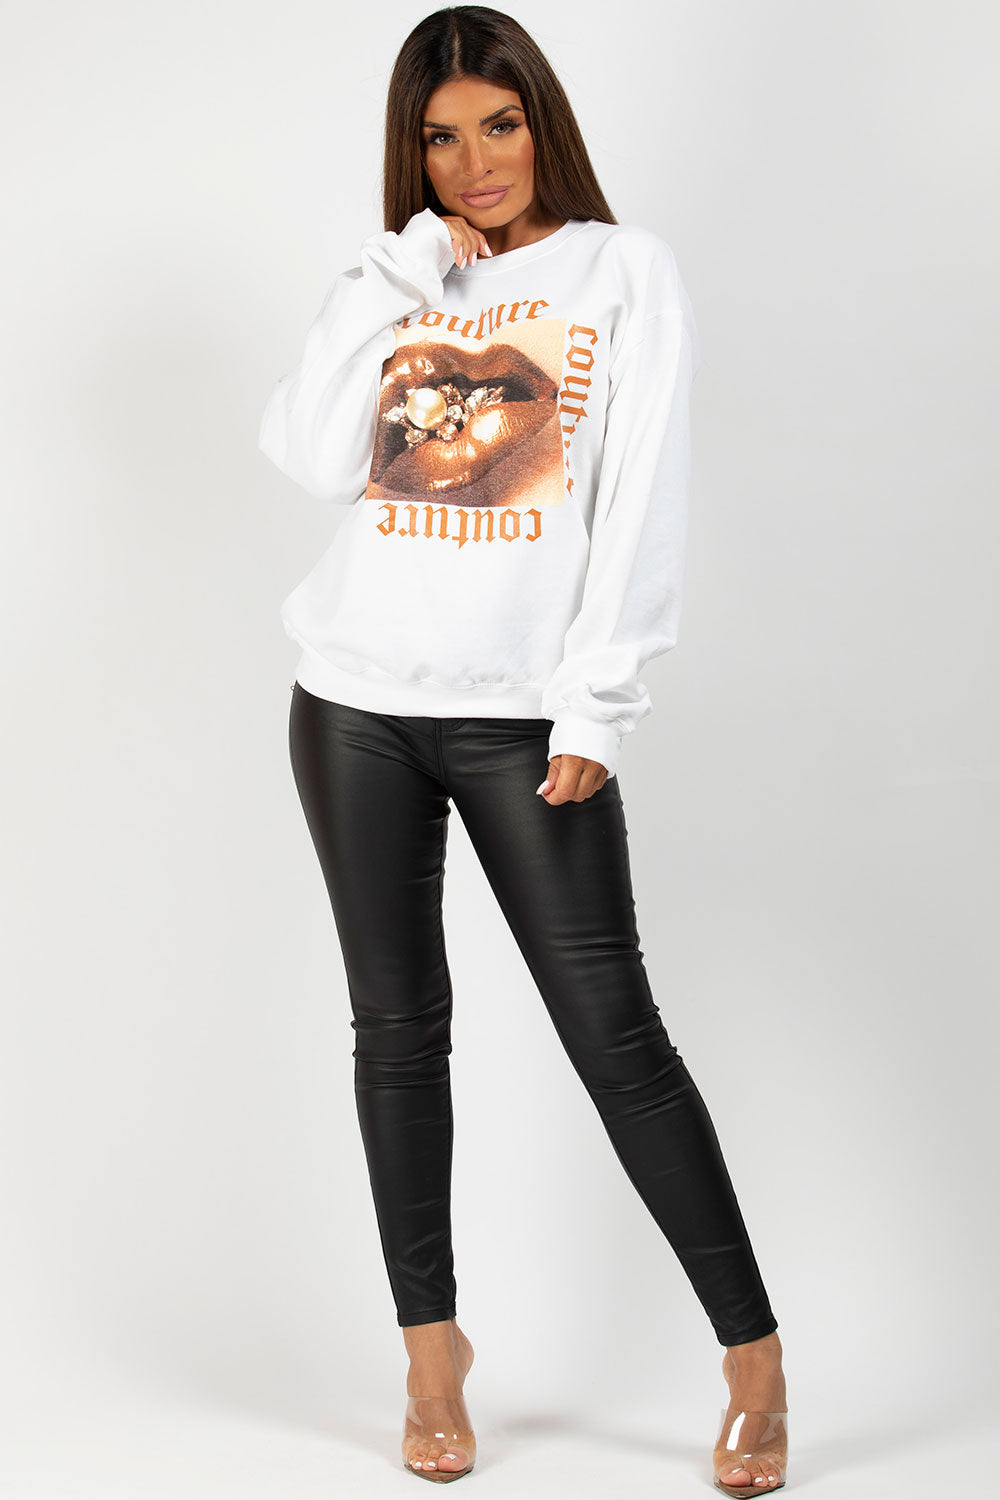 couture graphic sweatshirt